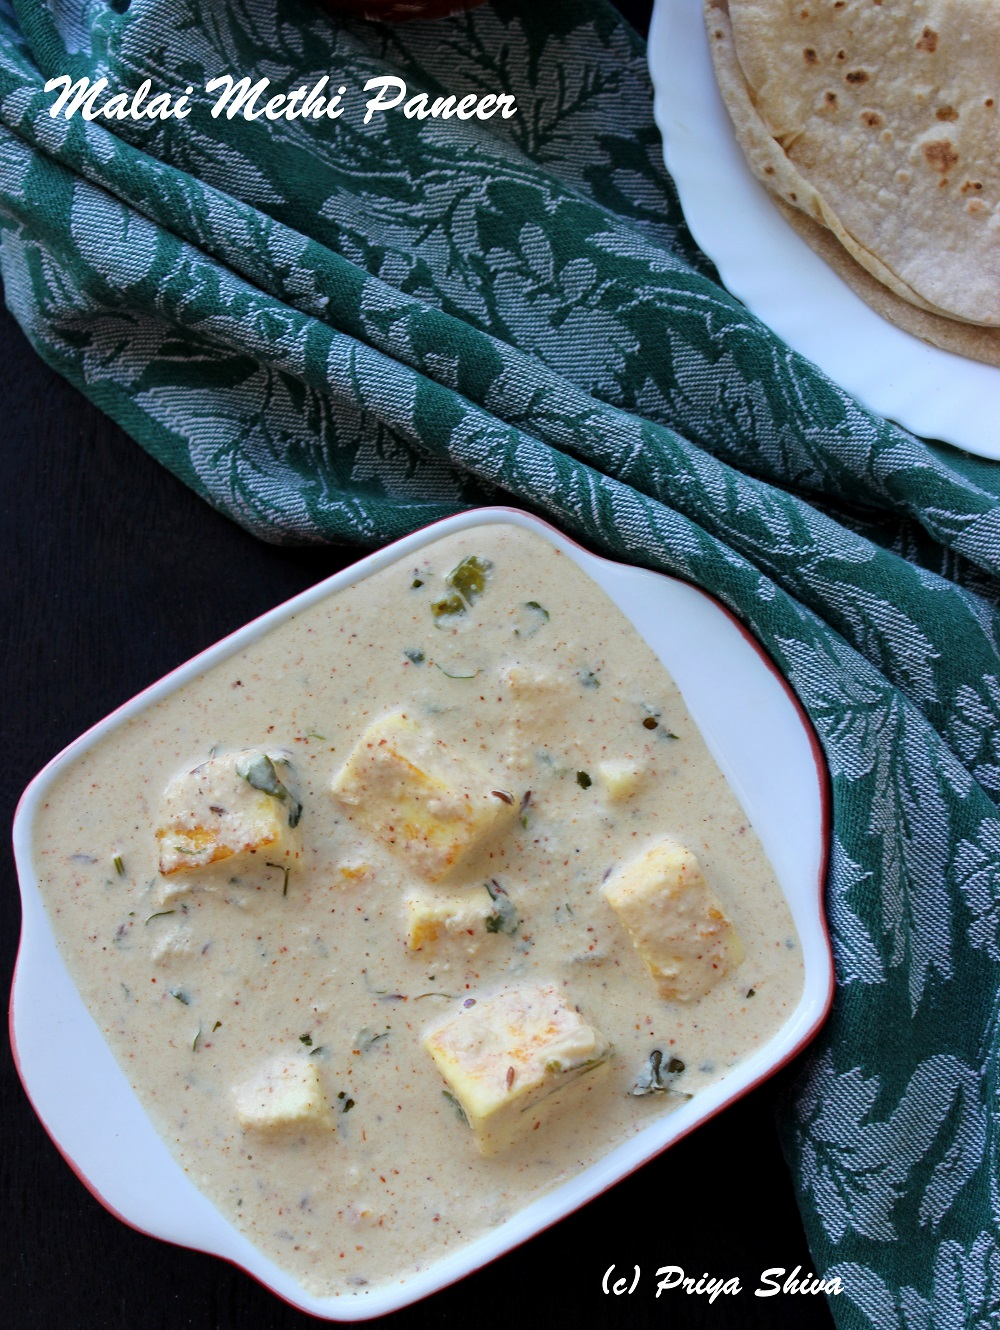 malai methi paneer recipe